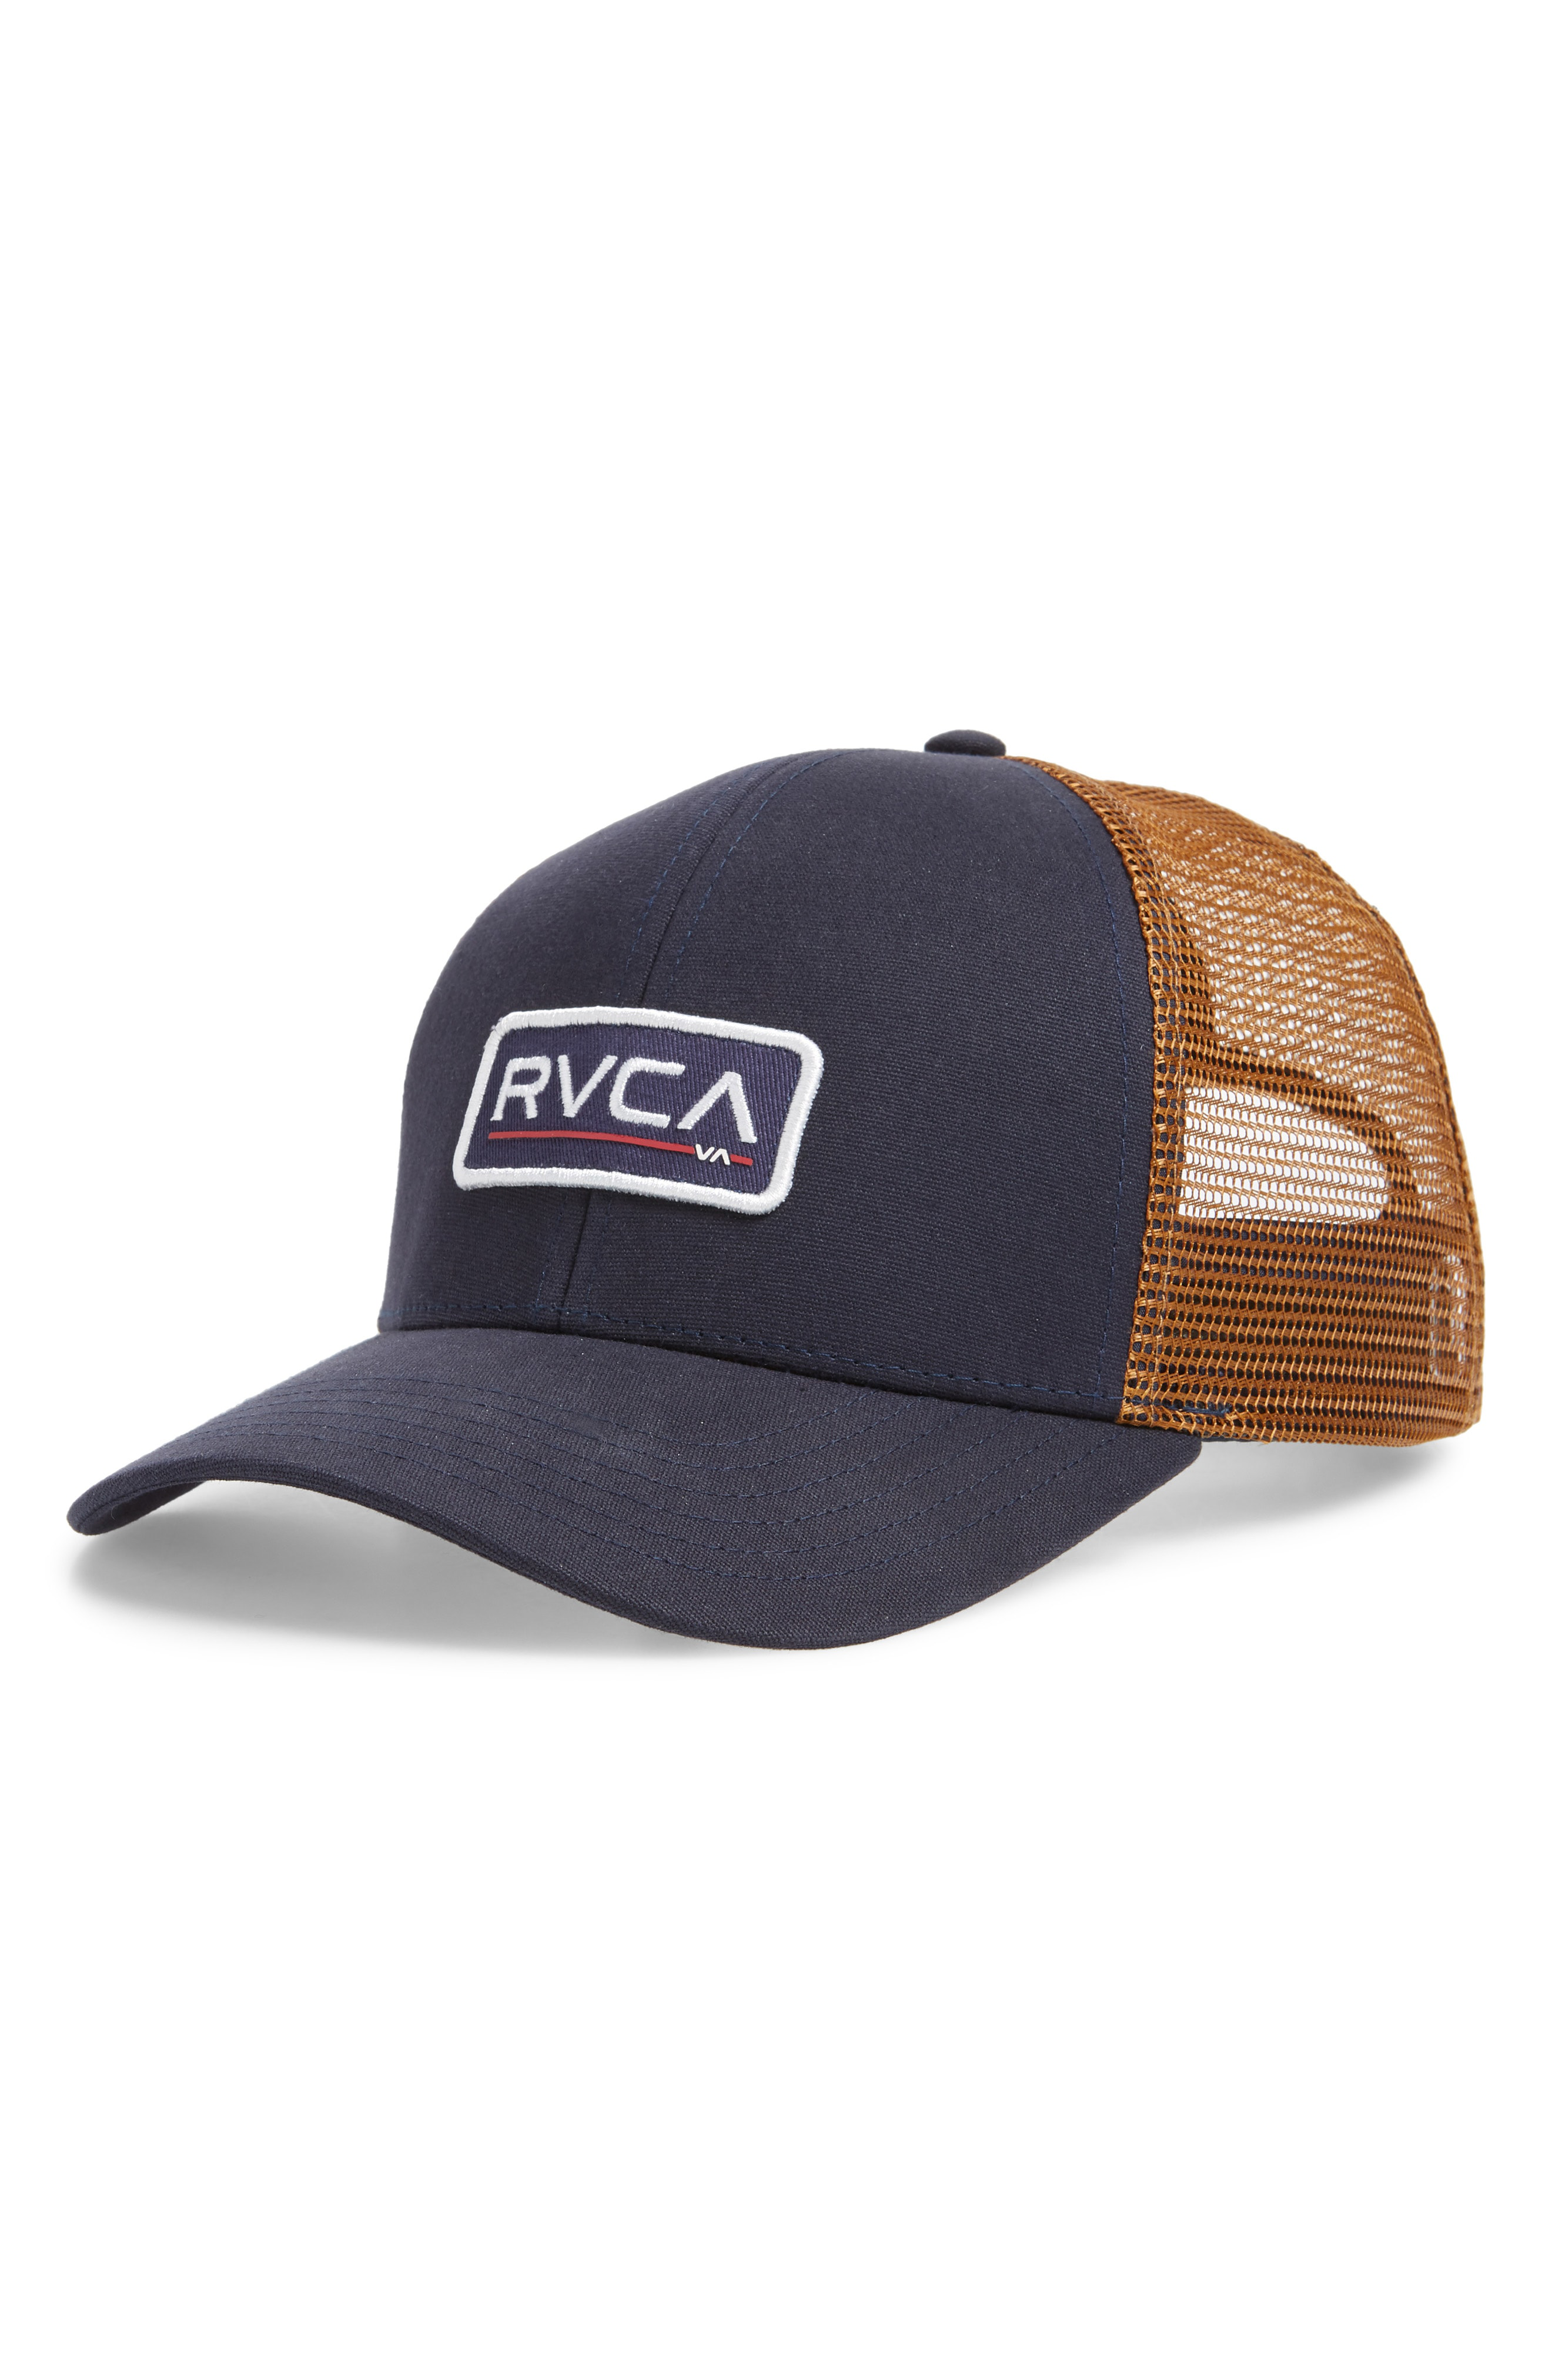 finest selection de9e3 21ffd Rvca Ticket Ii Trucker Hat In Navy